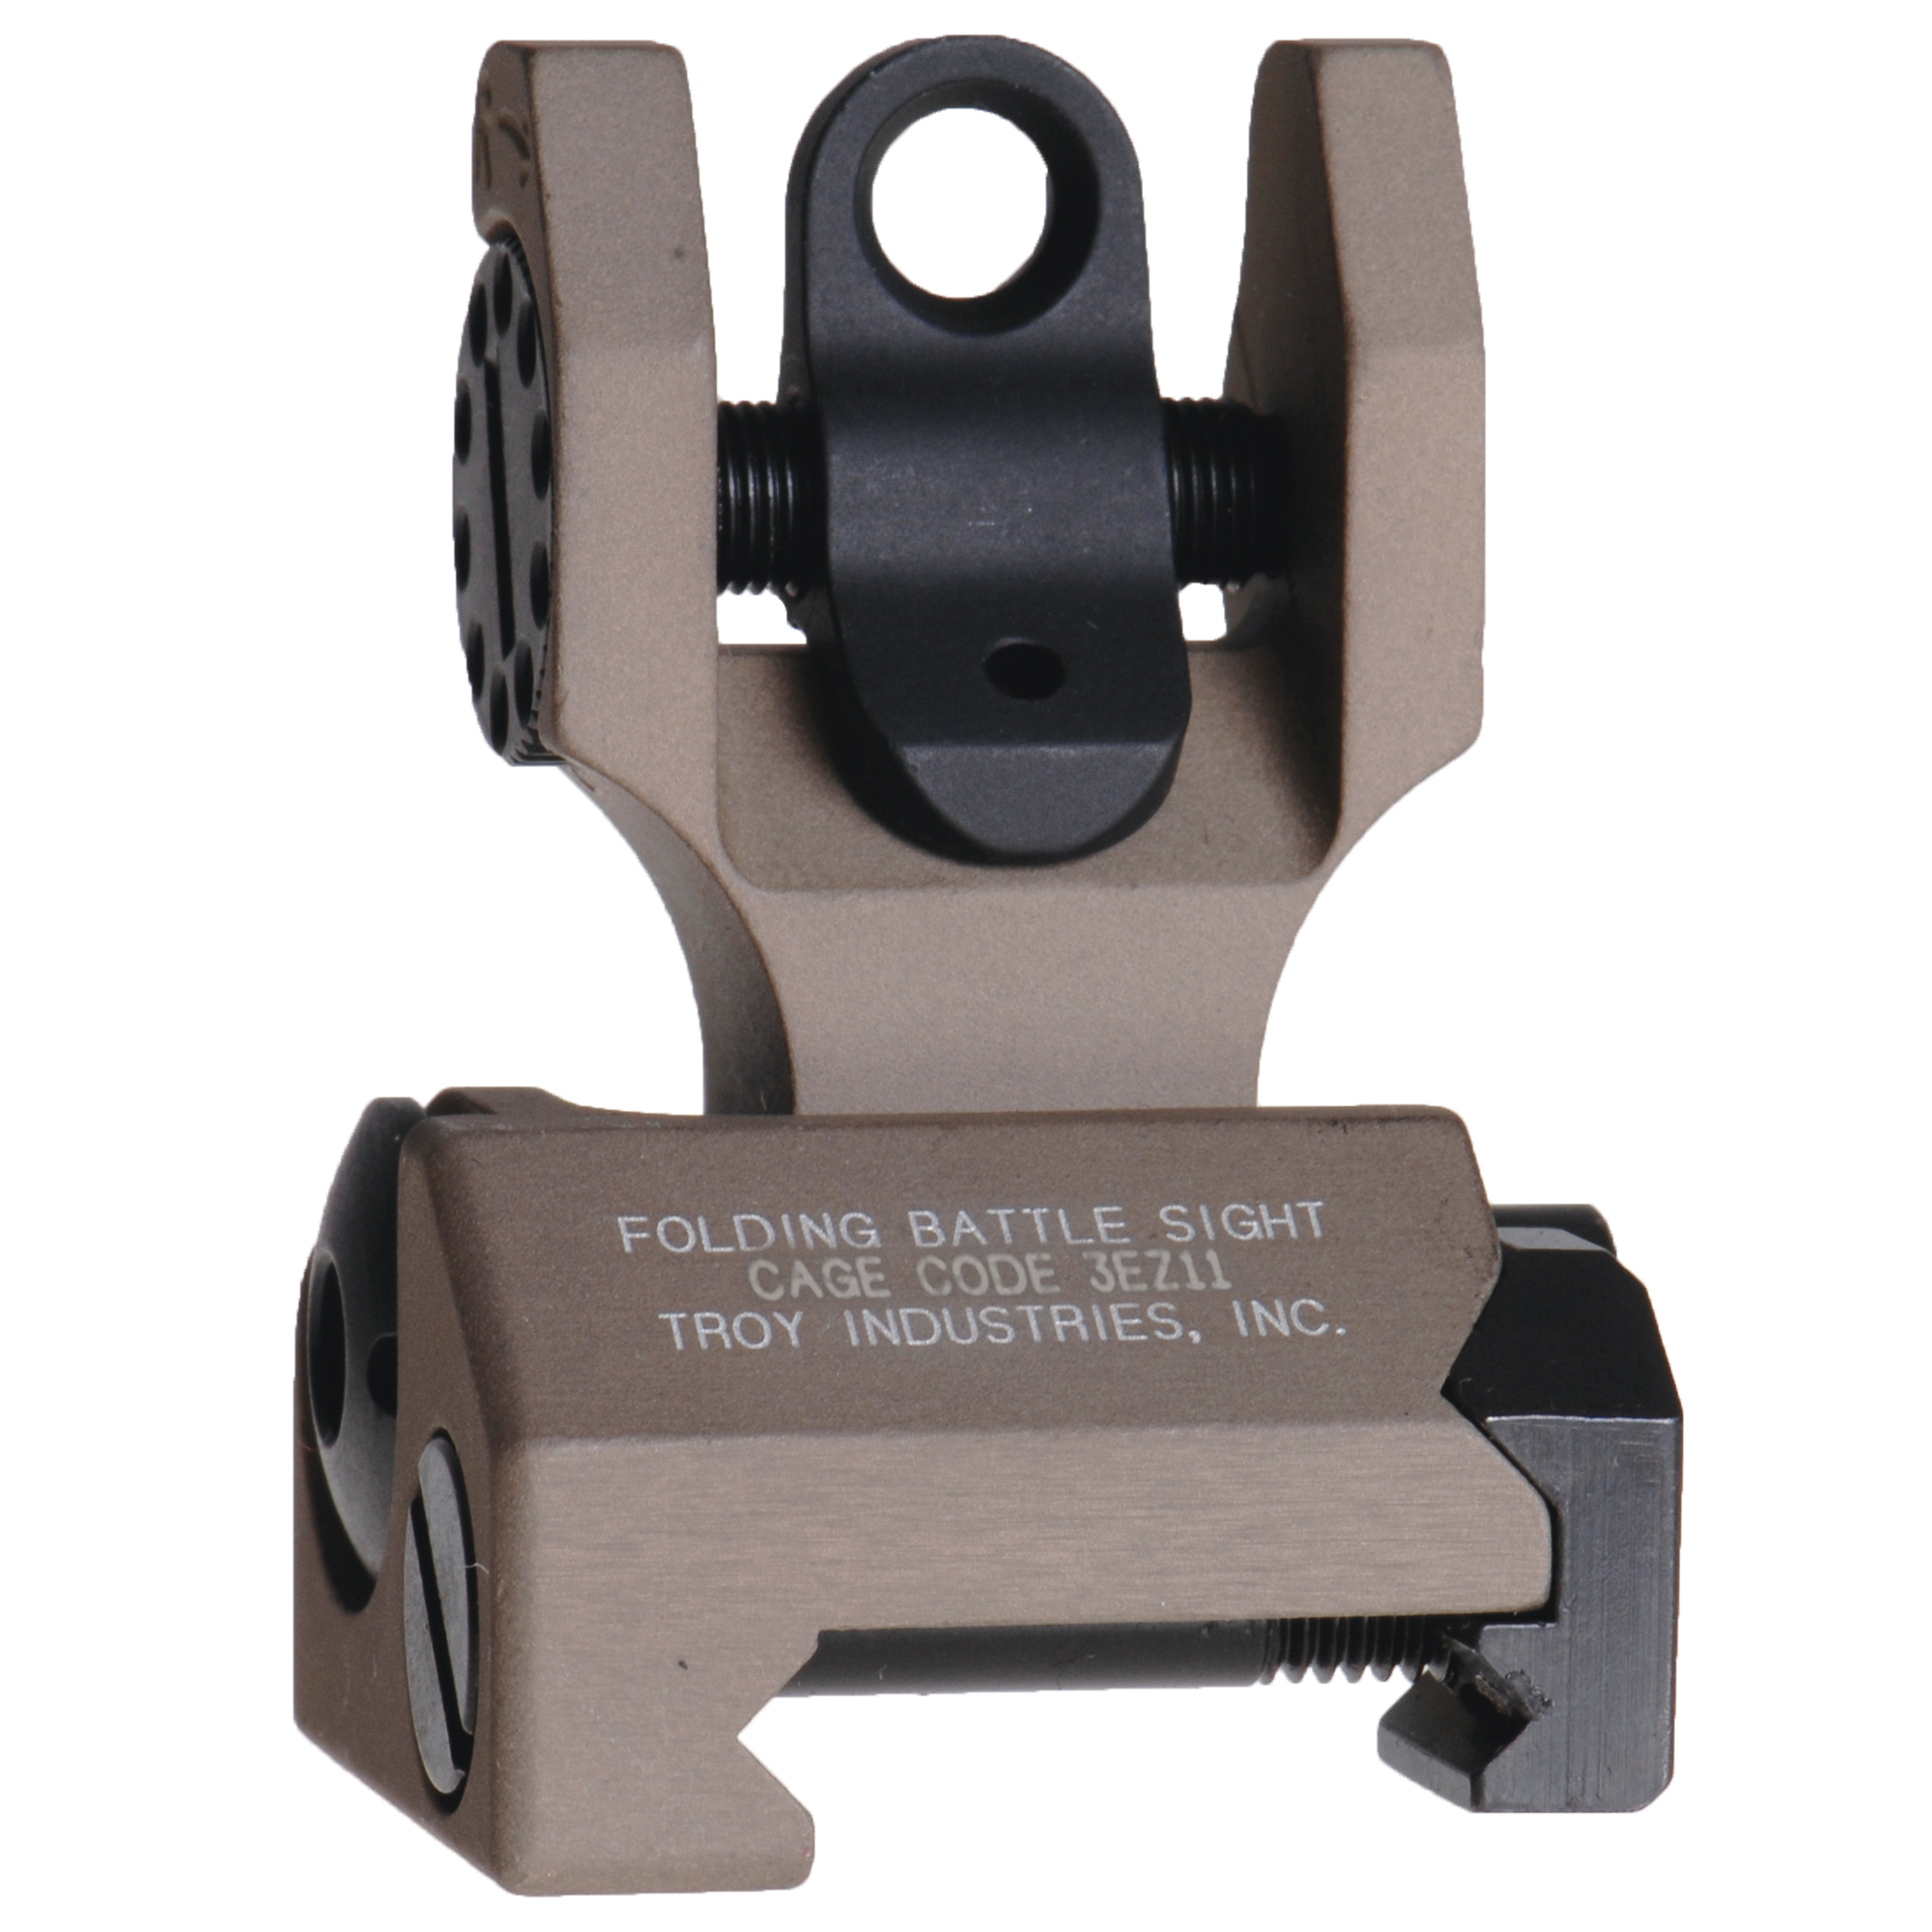 """Durability and dead-on accuracy make Troy BattleSights(TM) the hands-down first choice of Special Ops and Tactical Users Worldwide. Troy's Rear Folding BattleSight is easy to install and deploy"""" with no levers or springs to fumble with. No tools required for adjustment."""